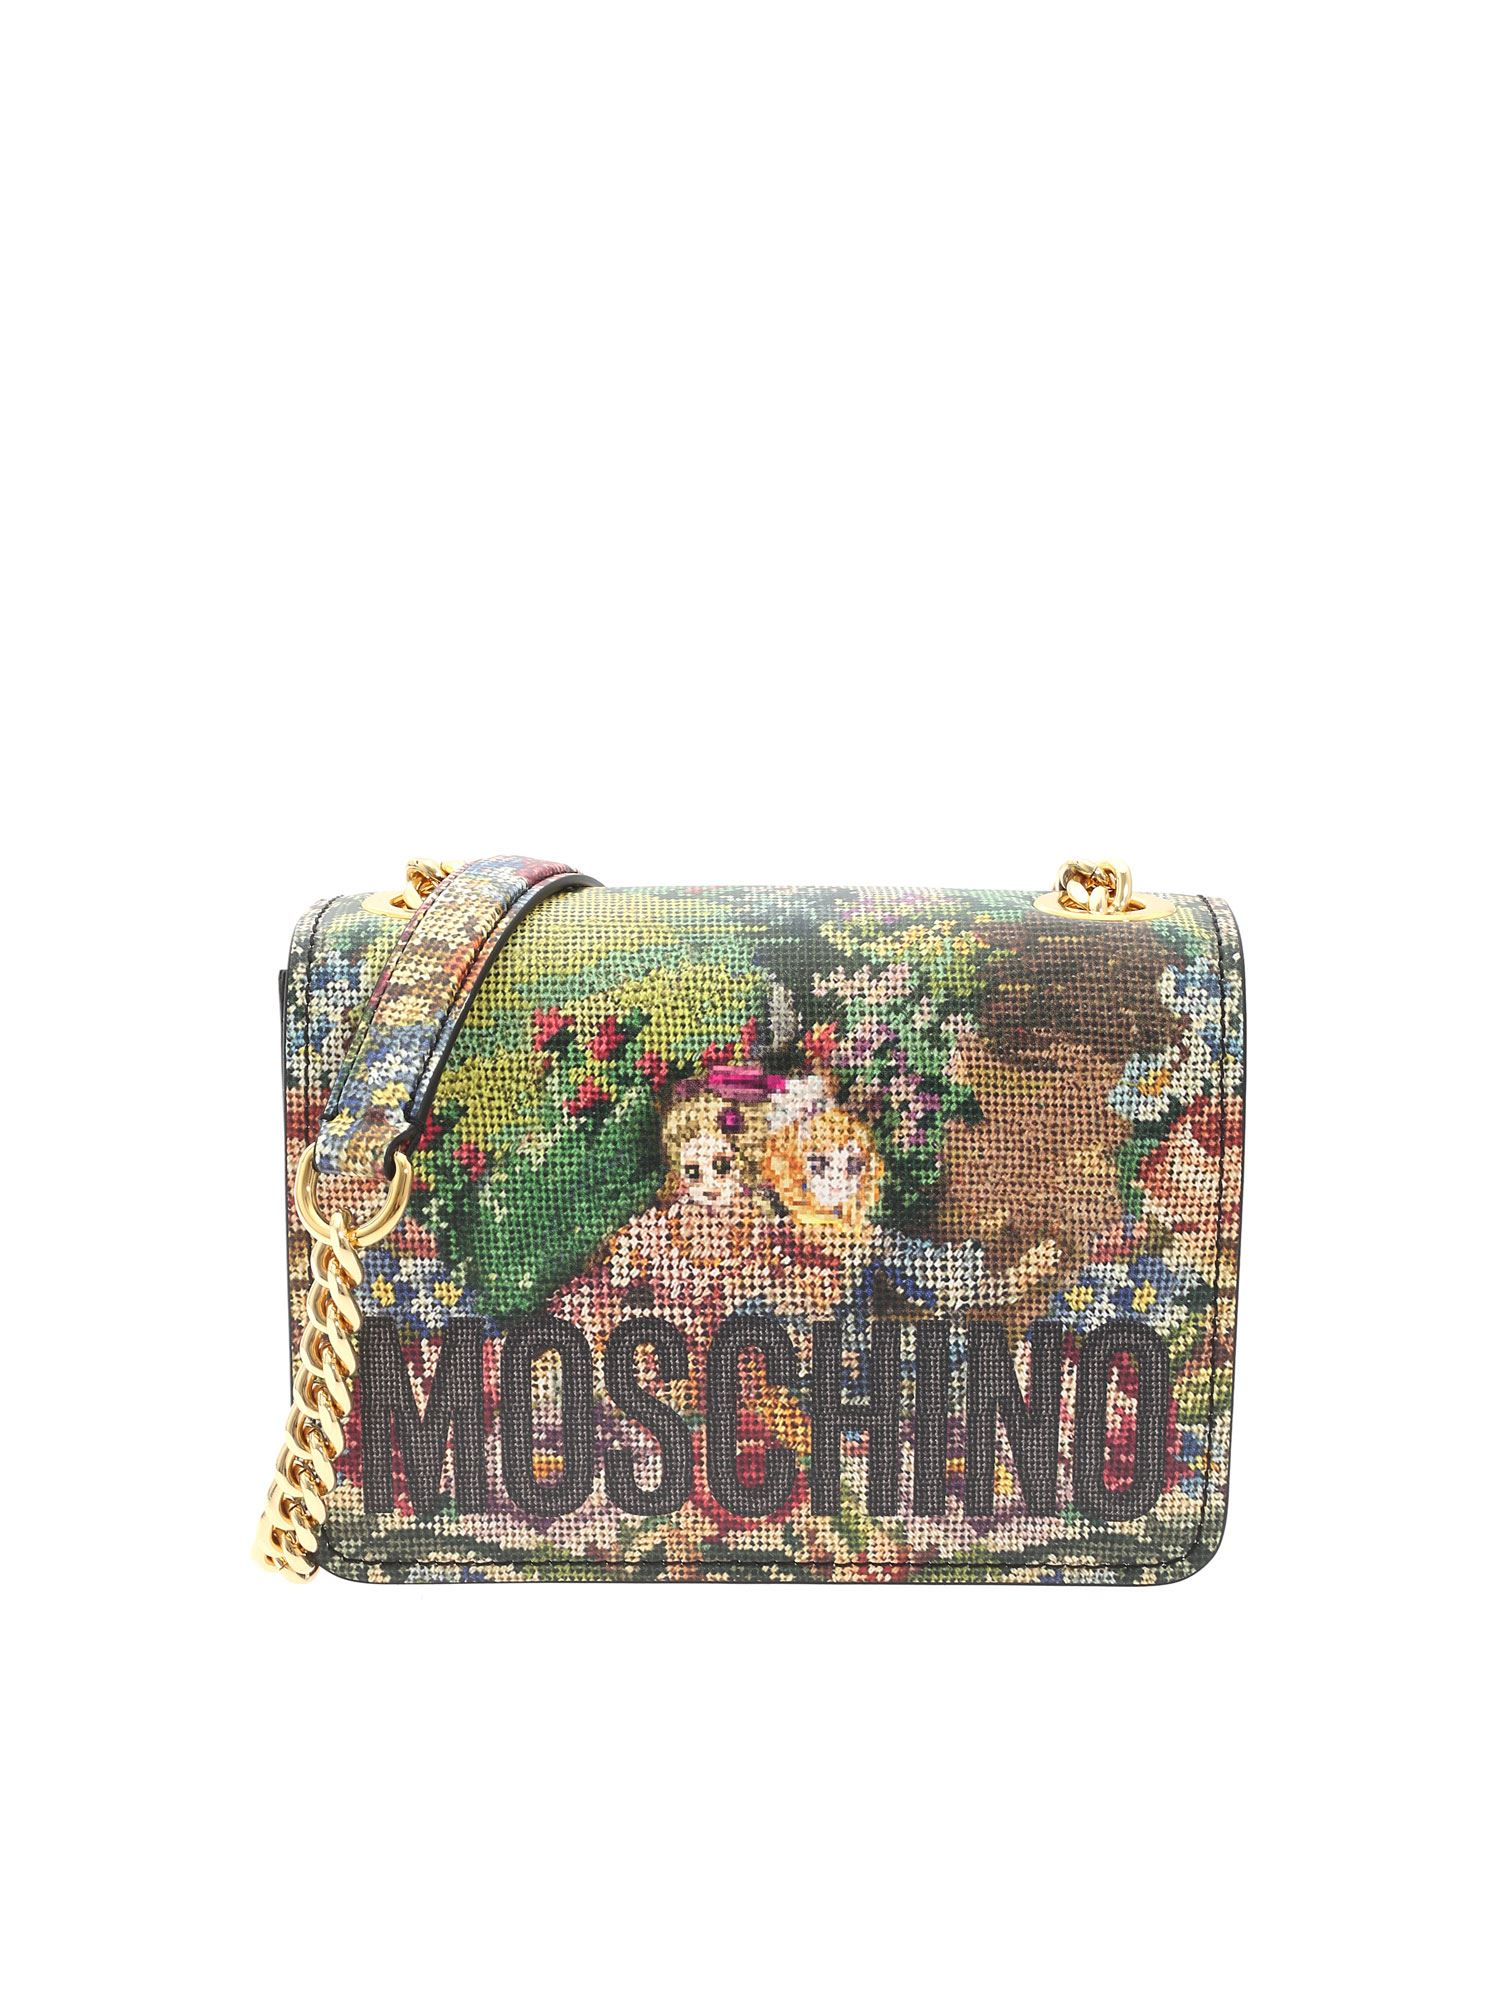 Moschino Leathers CROSS STITCH ANIME MULTICOLOR BAG